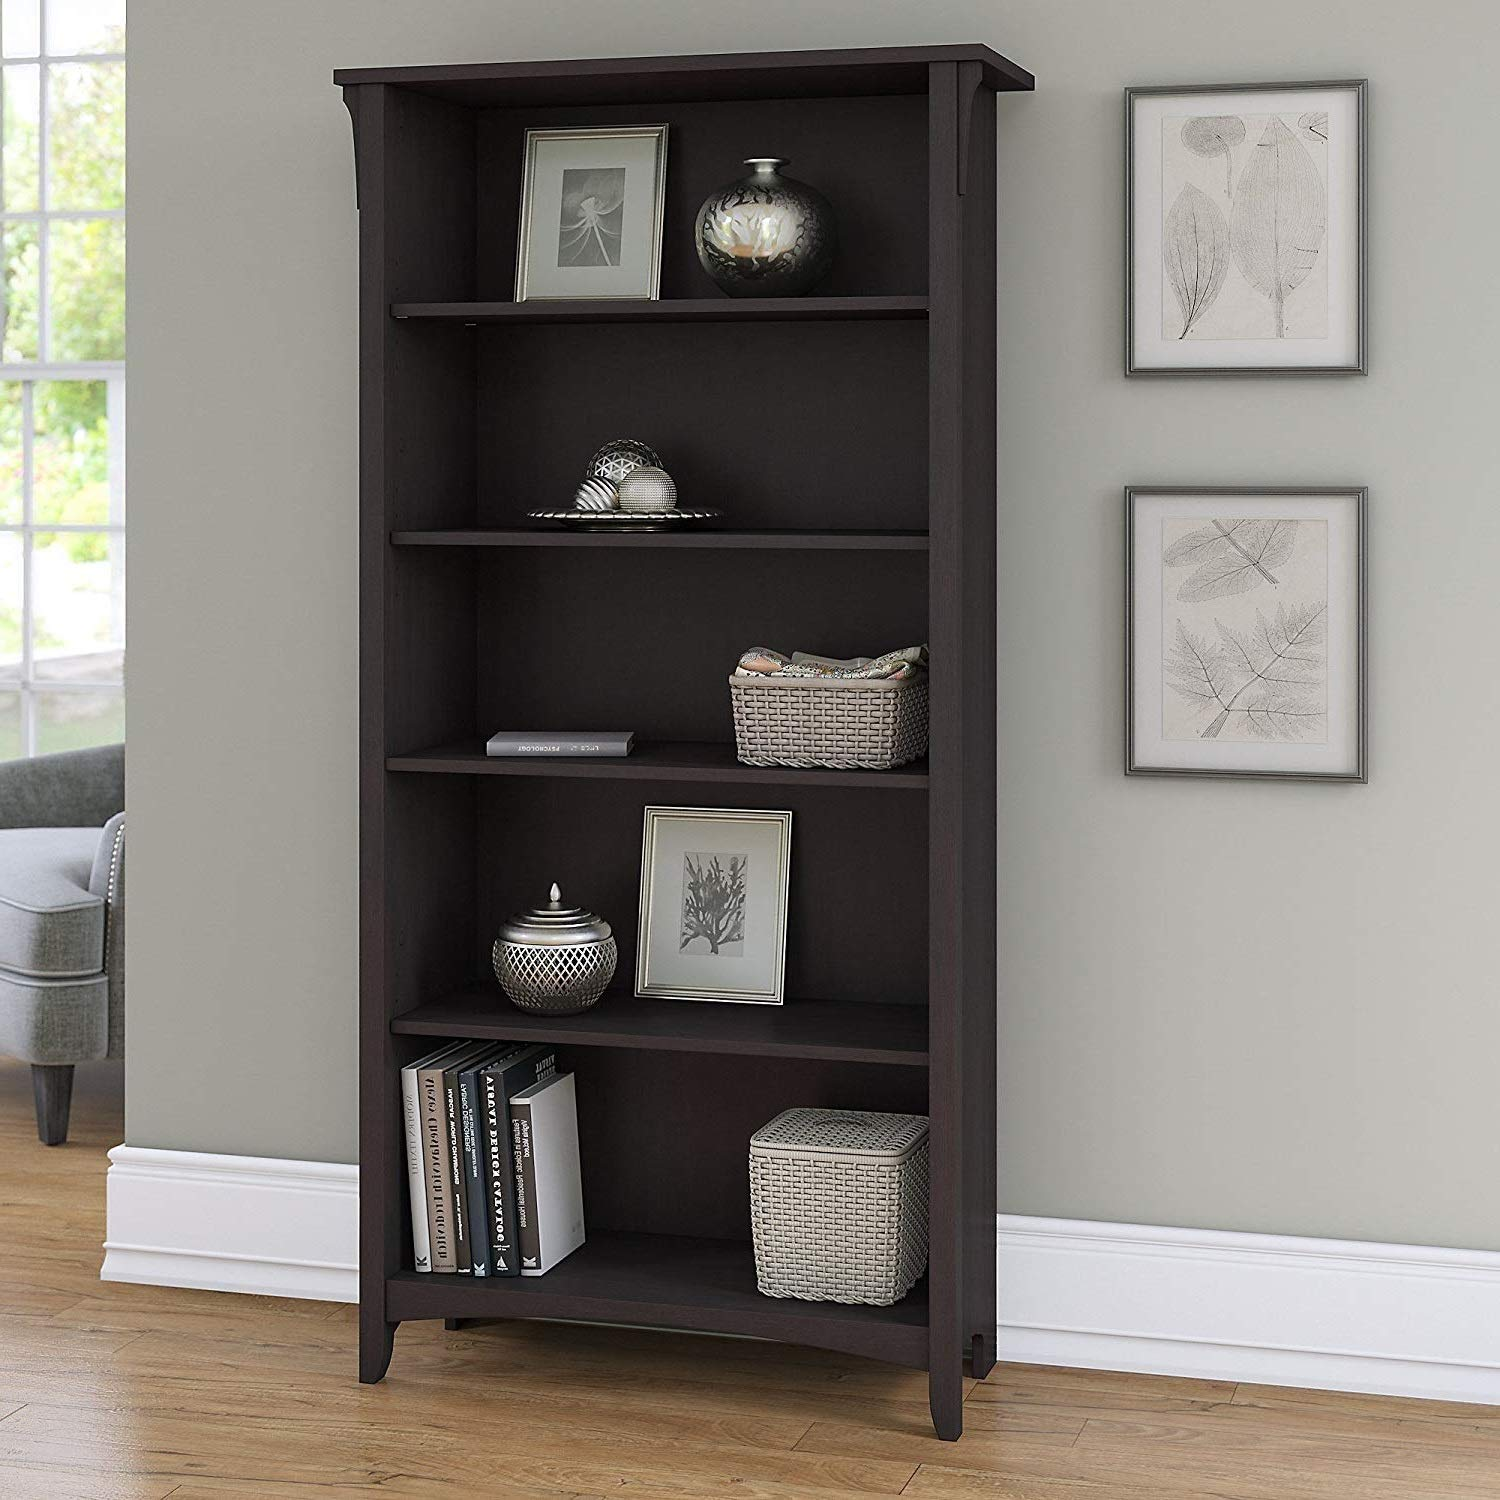 Get Quotations Tall Bookcase Cabinet 5 Shelf Storage Furniture Vertical Book Organizer Home Living Room Engineered Wood Accent